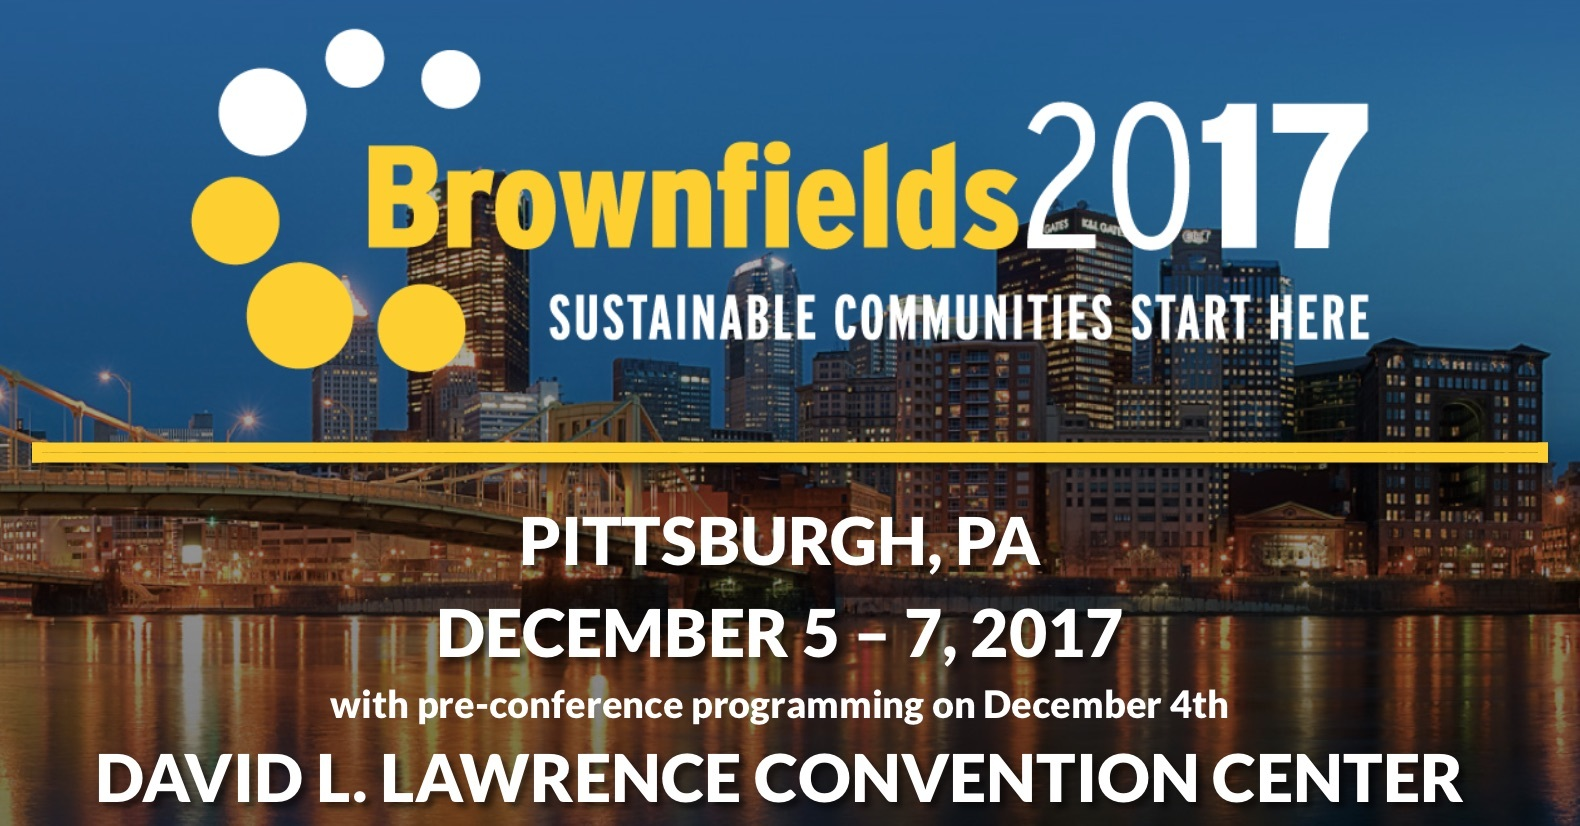 Brownfields2017.jpg#asset:967